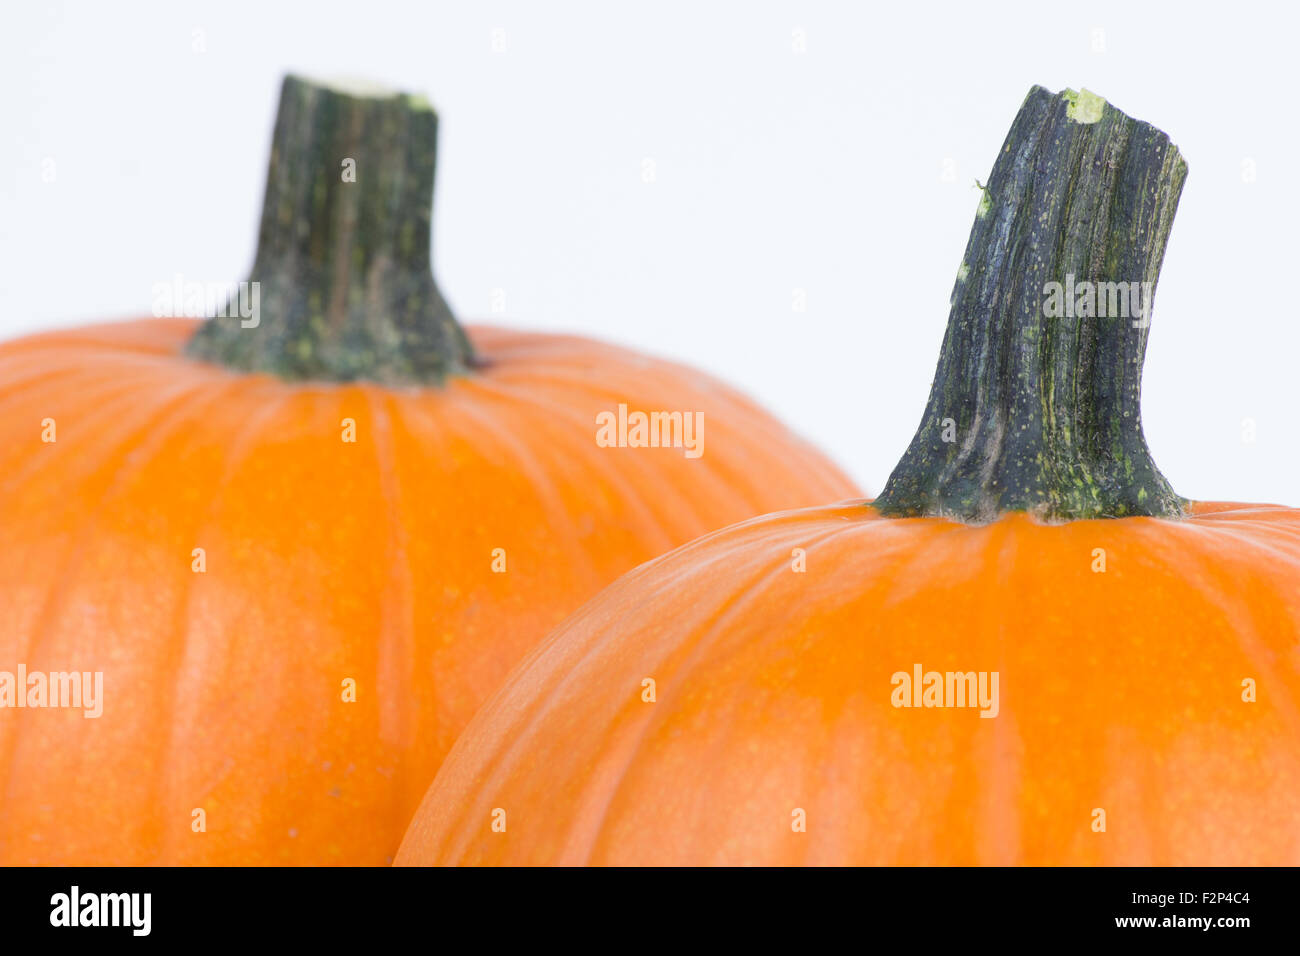 Closeup of two pumpkins isolated on white. - Stock Image